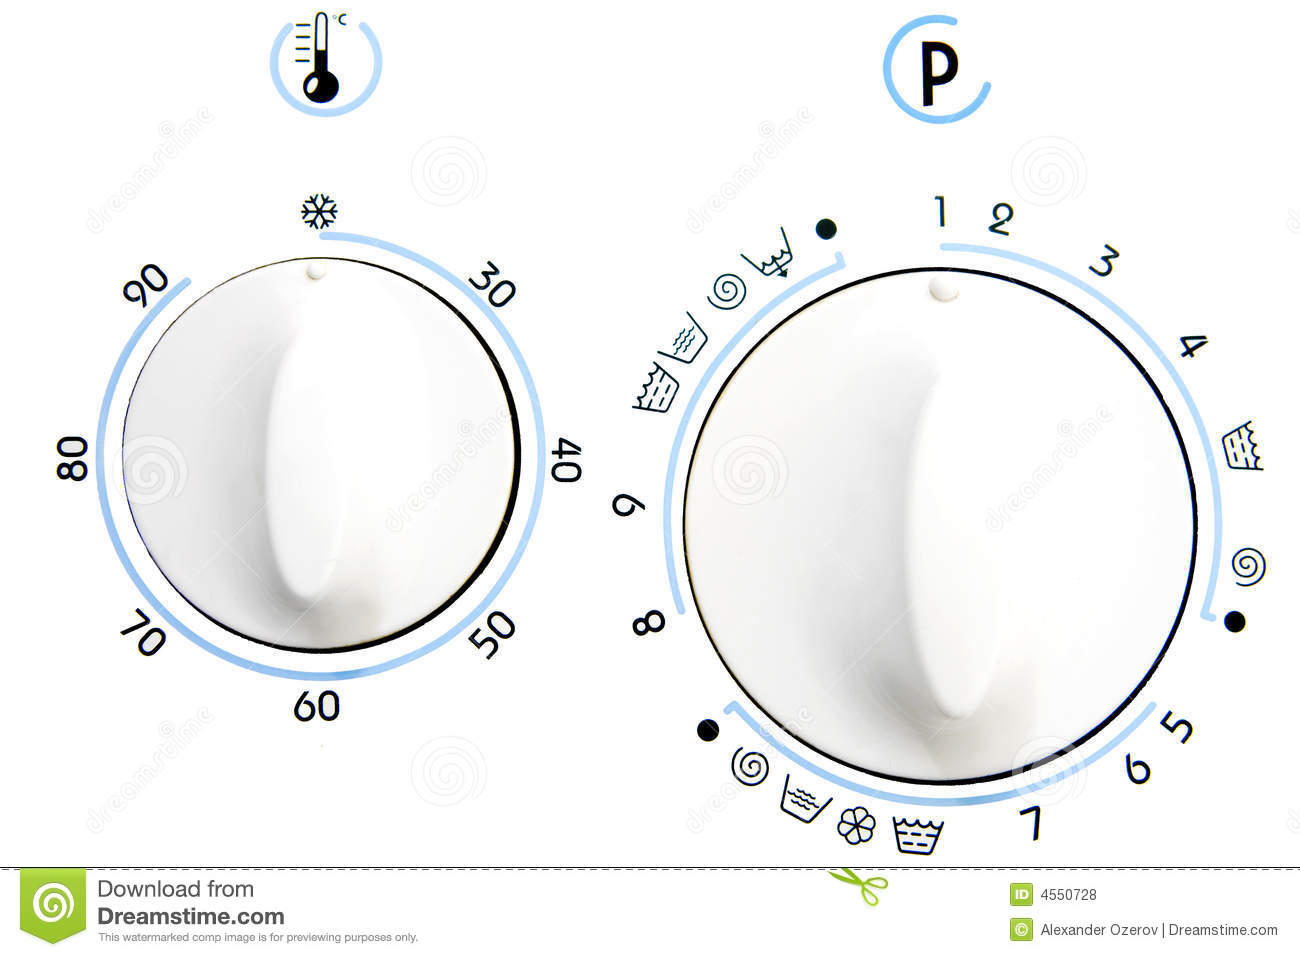 Rotary Knob Of Clothes Washer Royalty Free Stock Photos